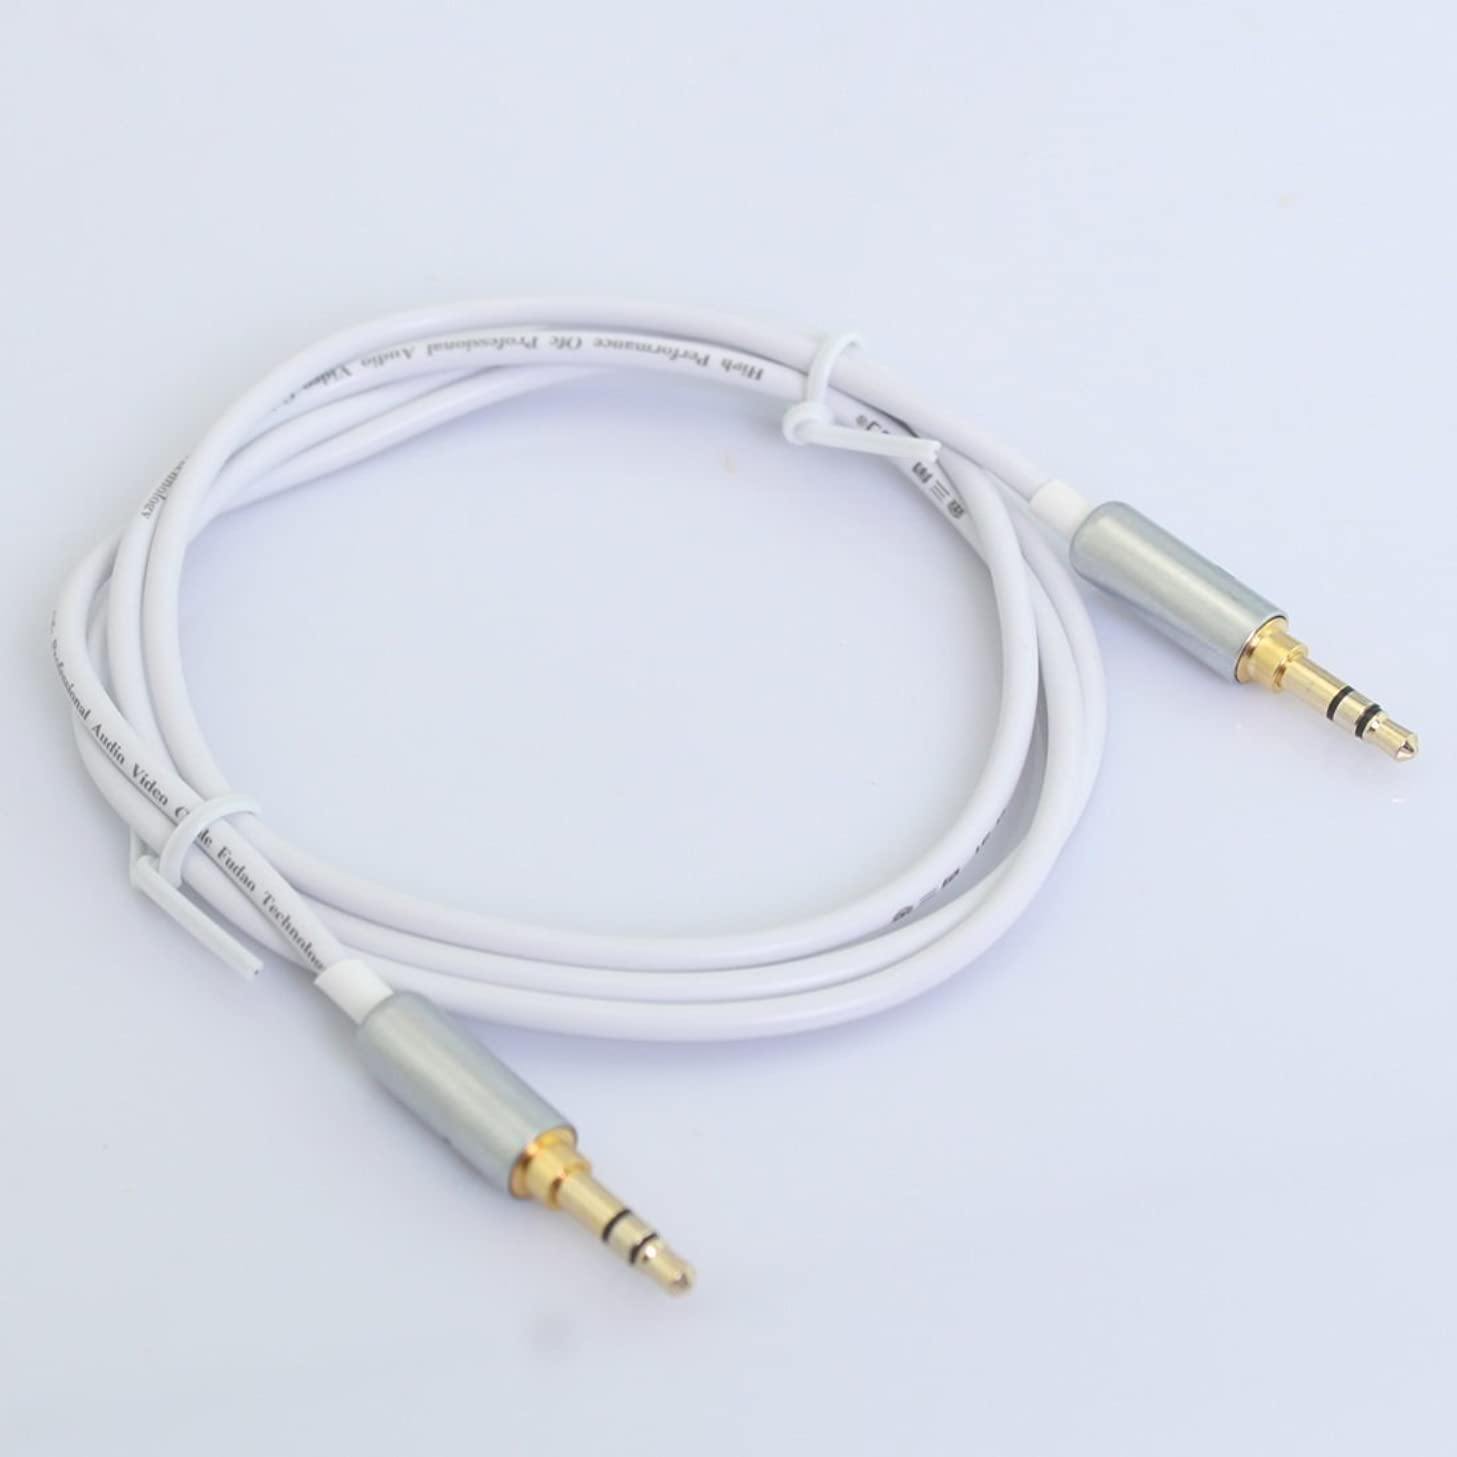 OnlineDo Gold Plated 3.5mm Stereo Audio Male to Male Extension Cable 3.3 Feet / 1 Meter White